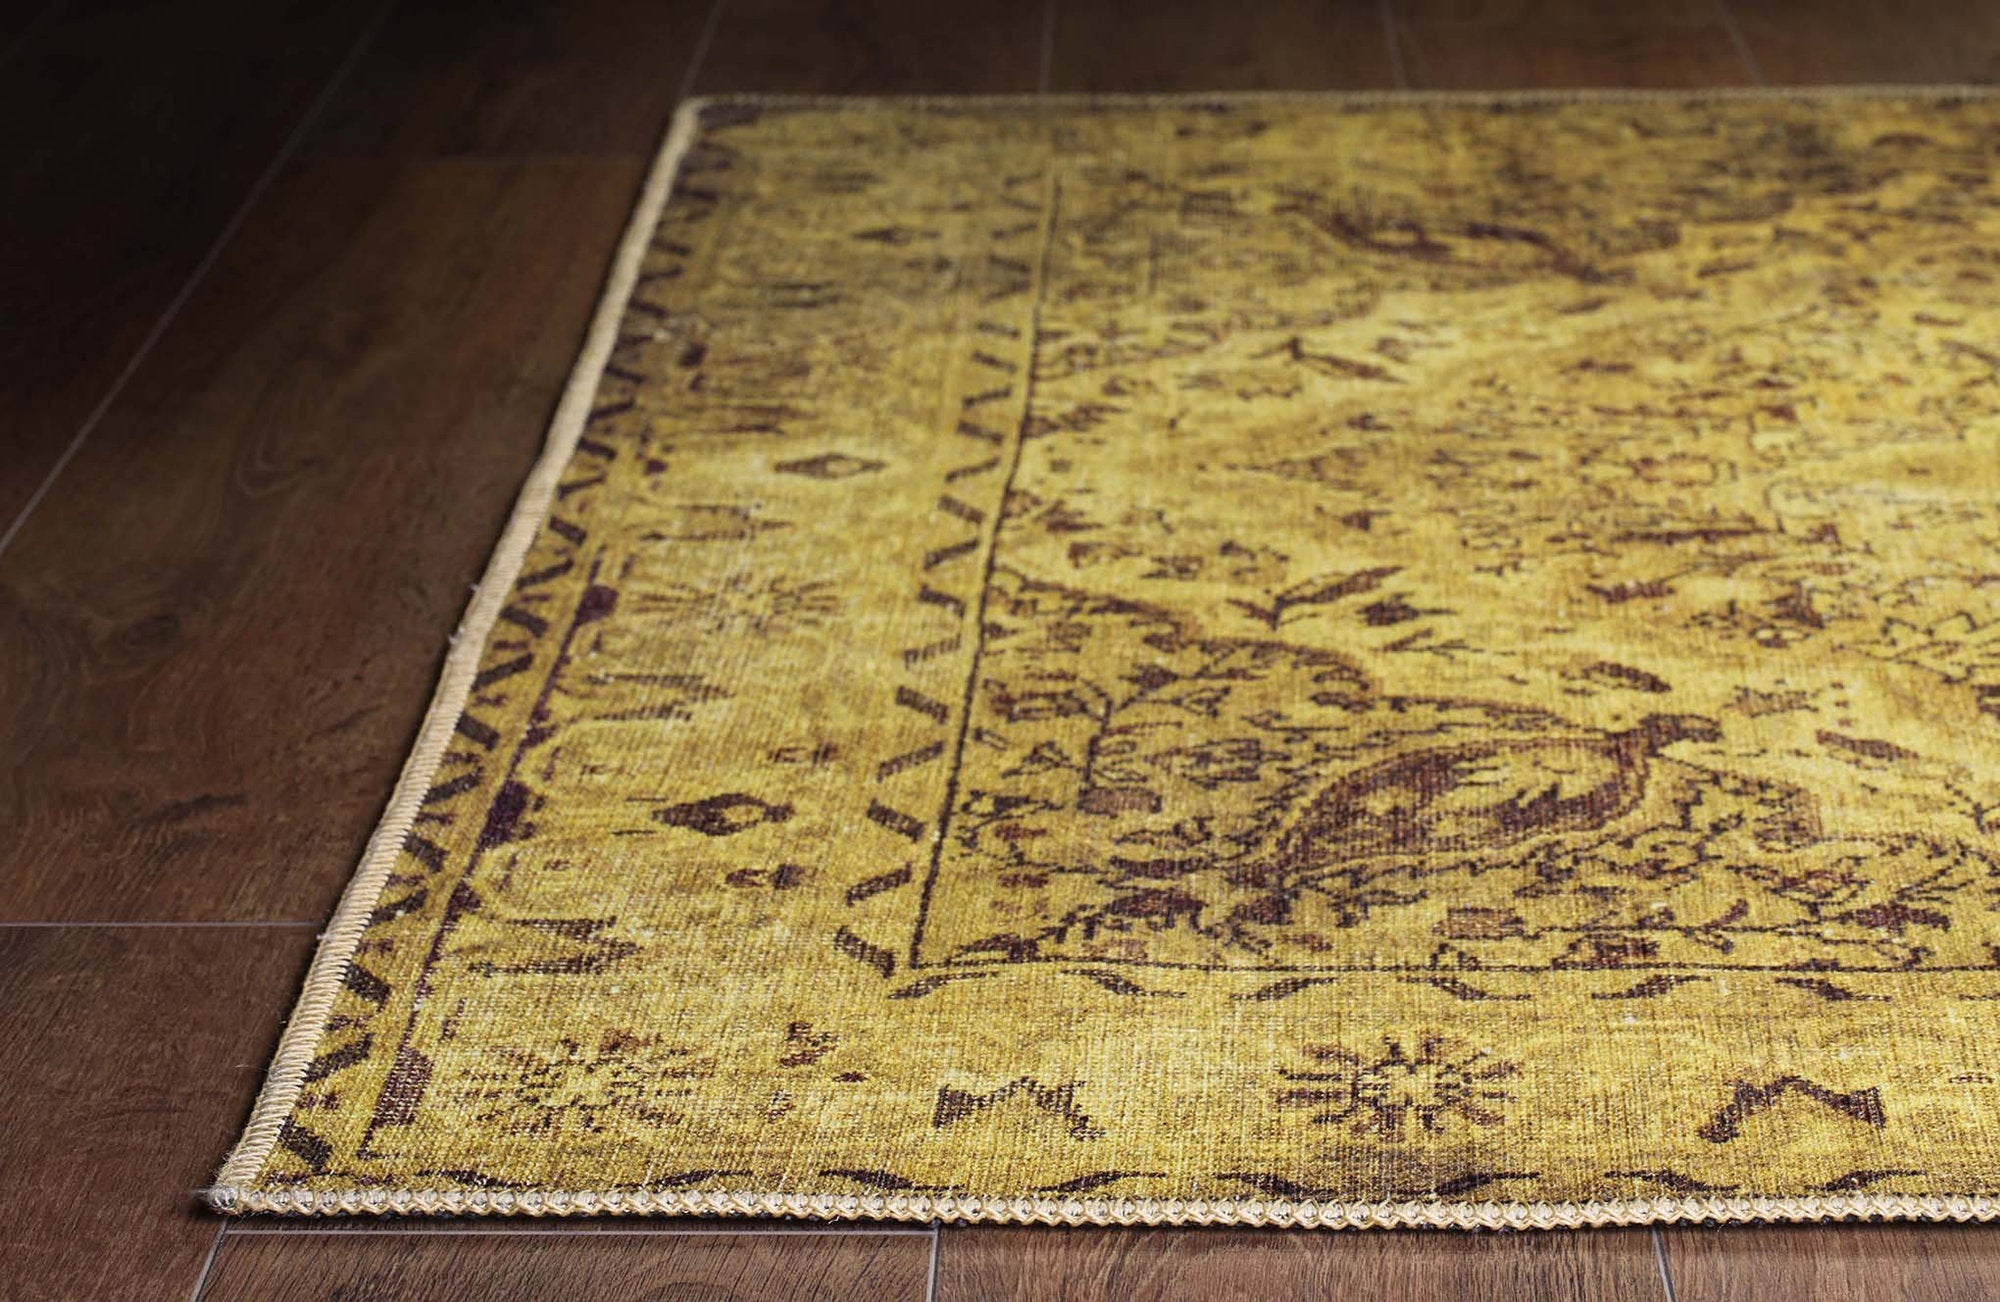 ZOEY | Oriental Design, Persian pattern, Over-dyed Vintage looks, Bohemian, Living room decor, Cotton back, Mid-century, Yellow, Brown, Rugs